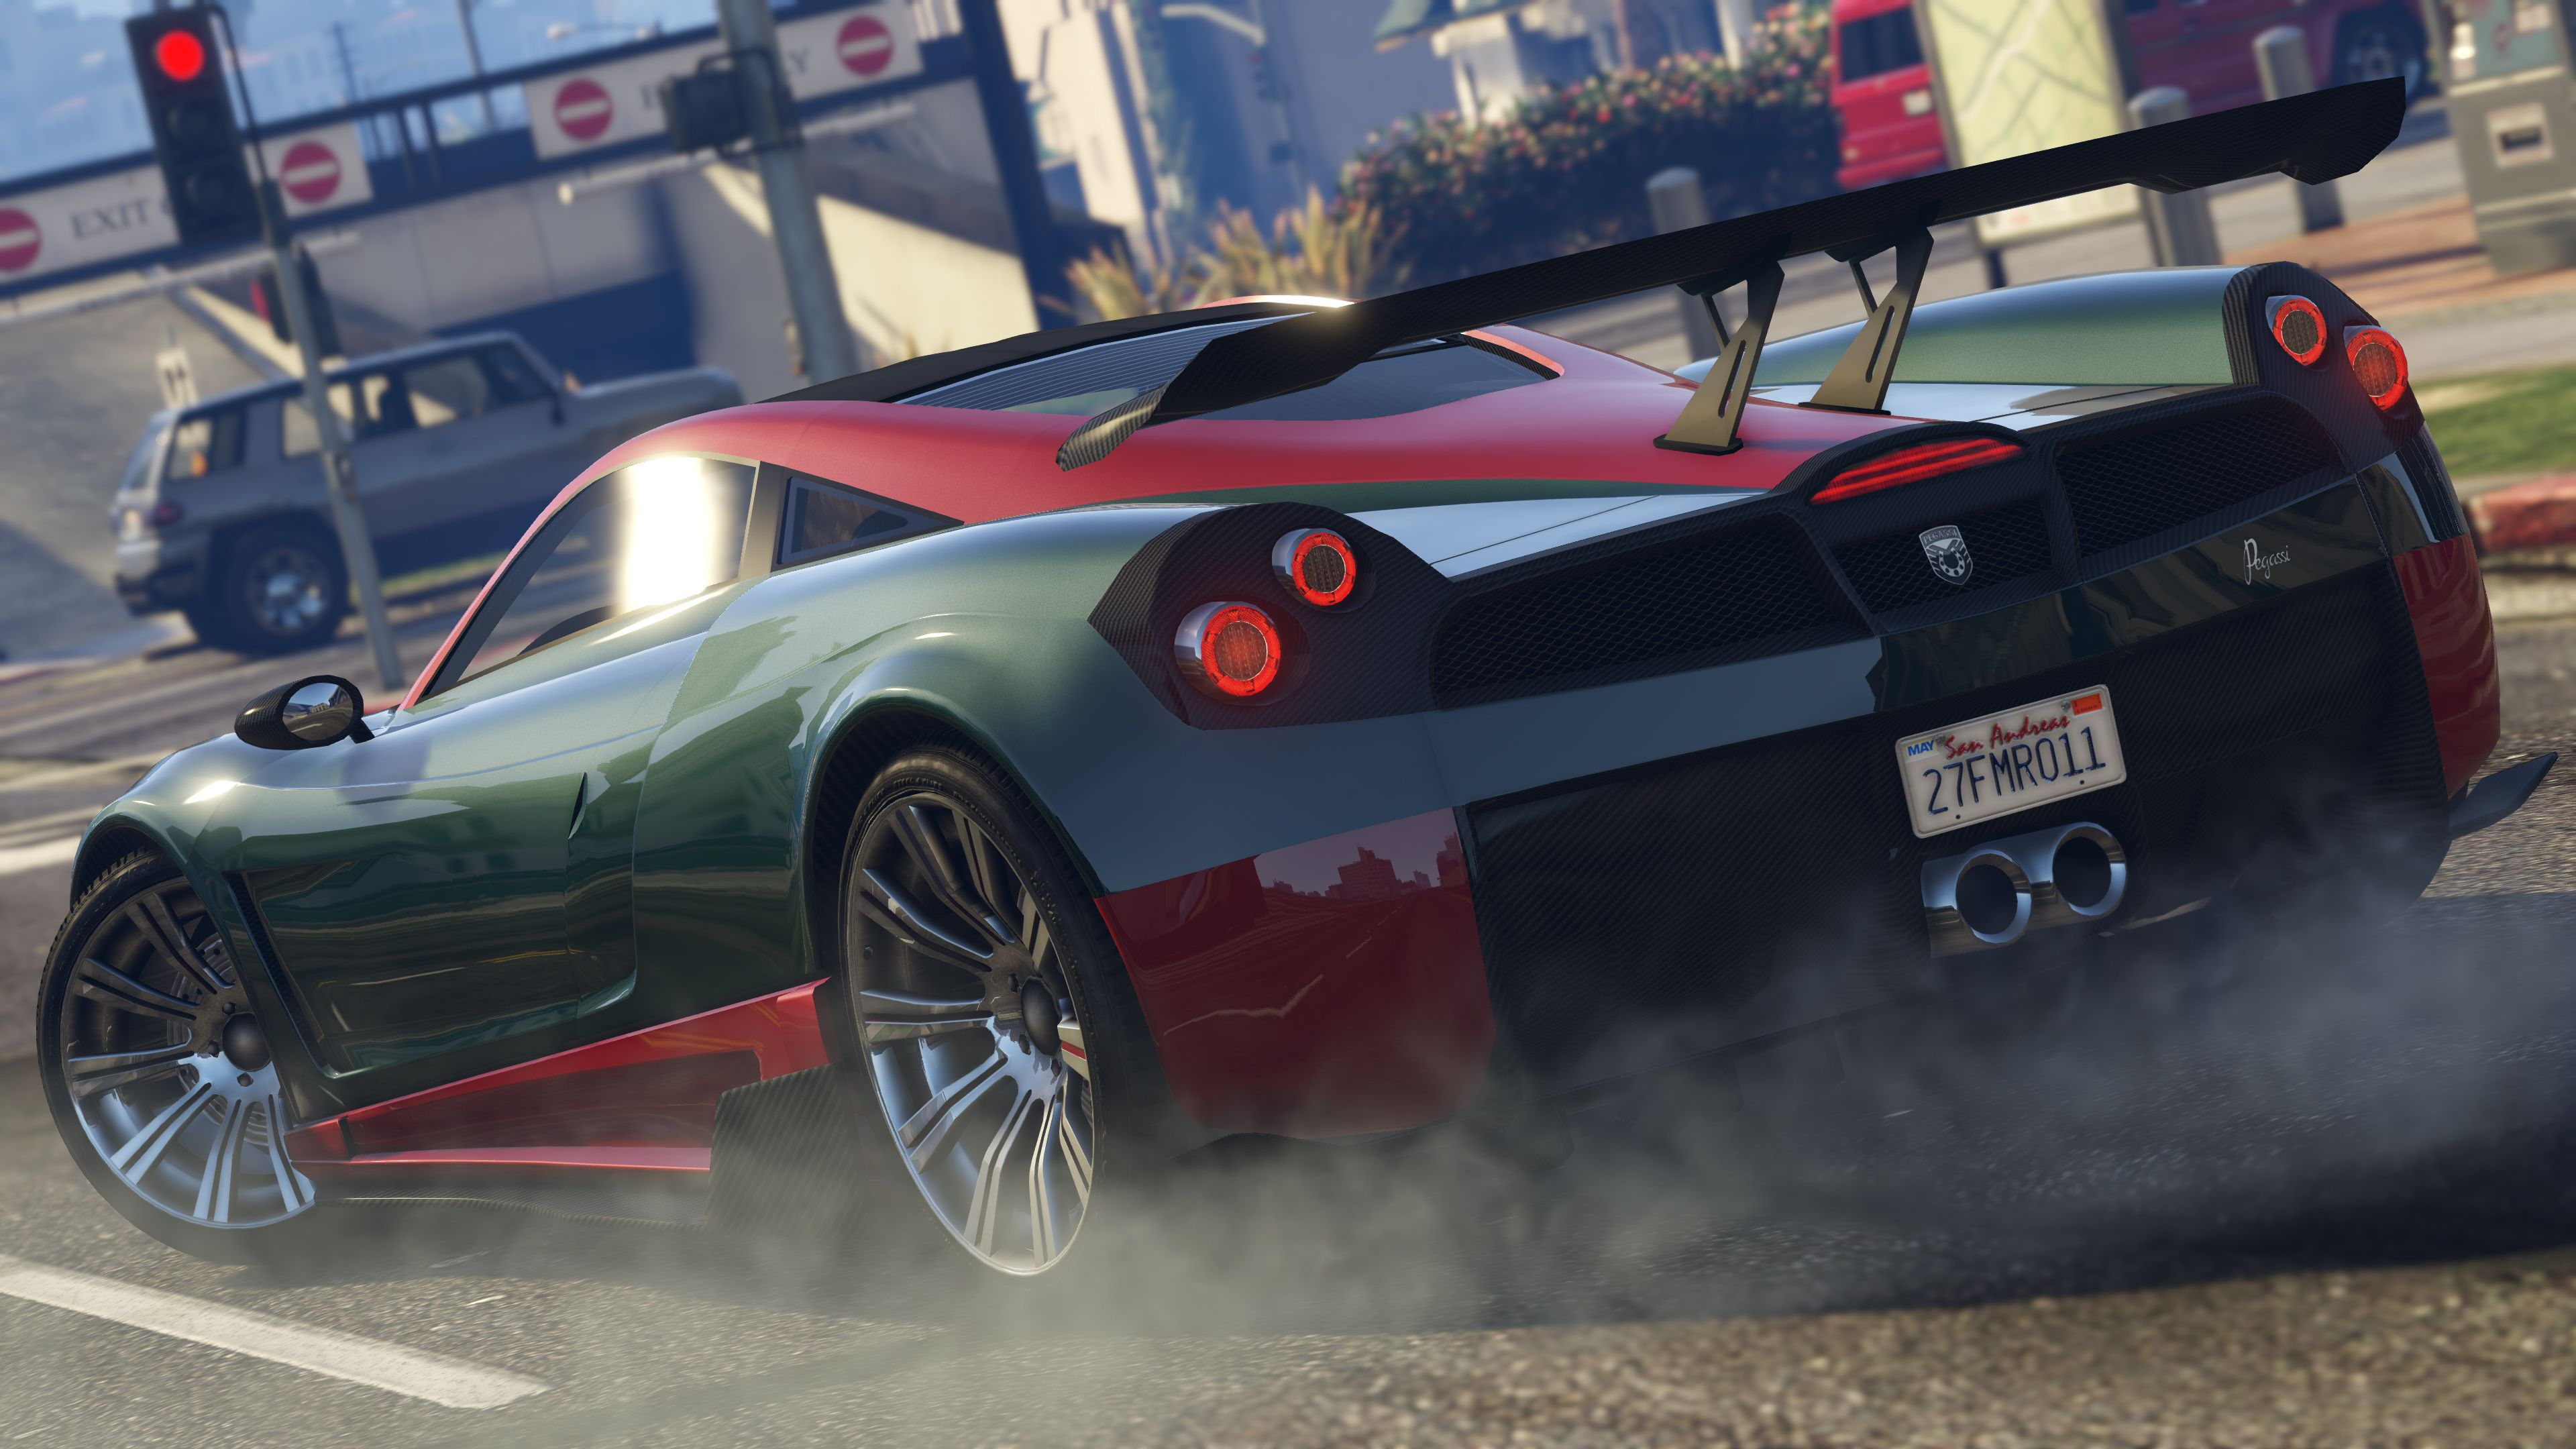 Top 5 Best Supercars For Racing In Gta 5 Gta 5 Is Definitely One Of The Most Exciting And Realistic Racing Games To Win It Yo Gta Grand Theft Auto Gta Online